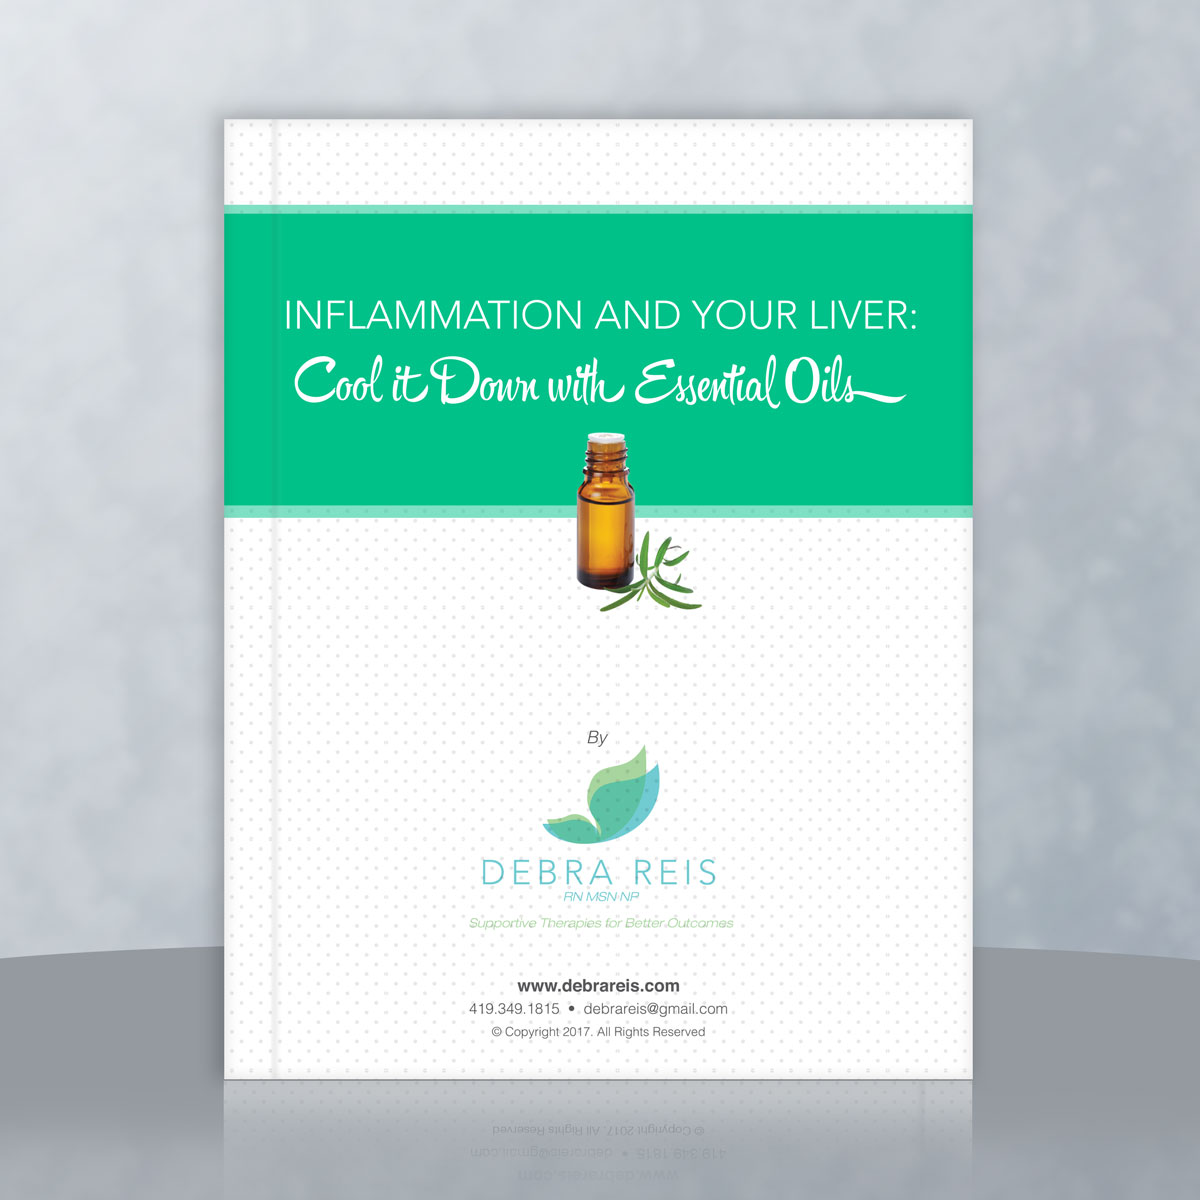 Inflammation and Essential Oils